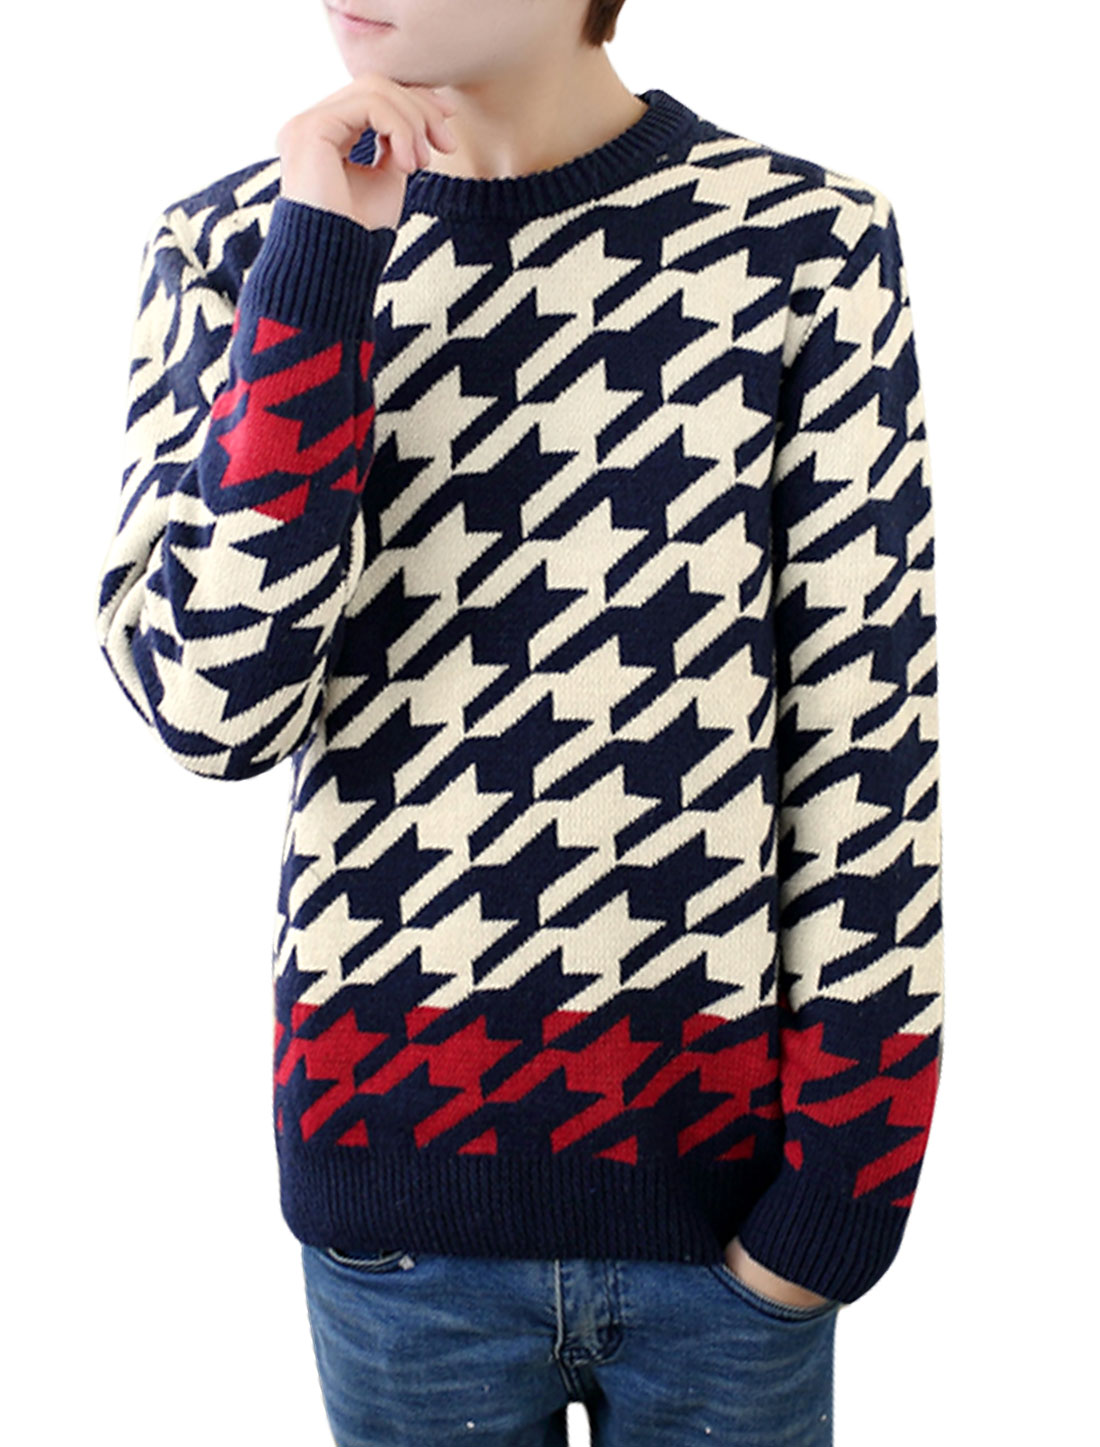 Houndstooth Pattern Slipover Cozy Fit Navy Blue Beige Casual Sweater for Man S